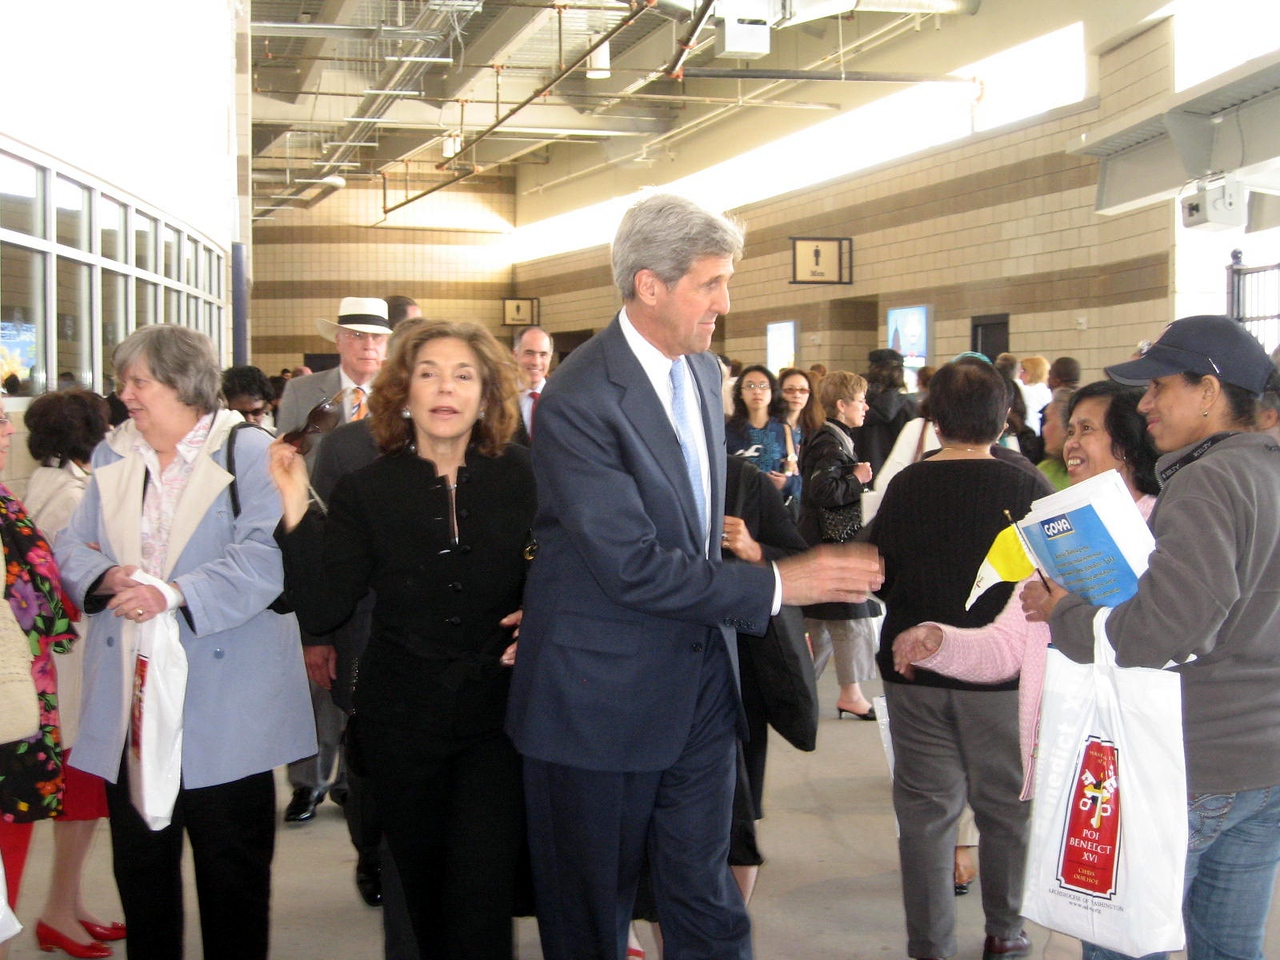 Teresa Heinz and U.S. Senator John Kerry leave after the Mass.  Behind them in the white hat is U.S. Senator Patrick Leahy.